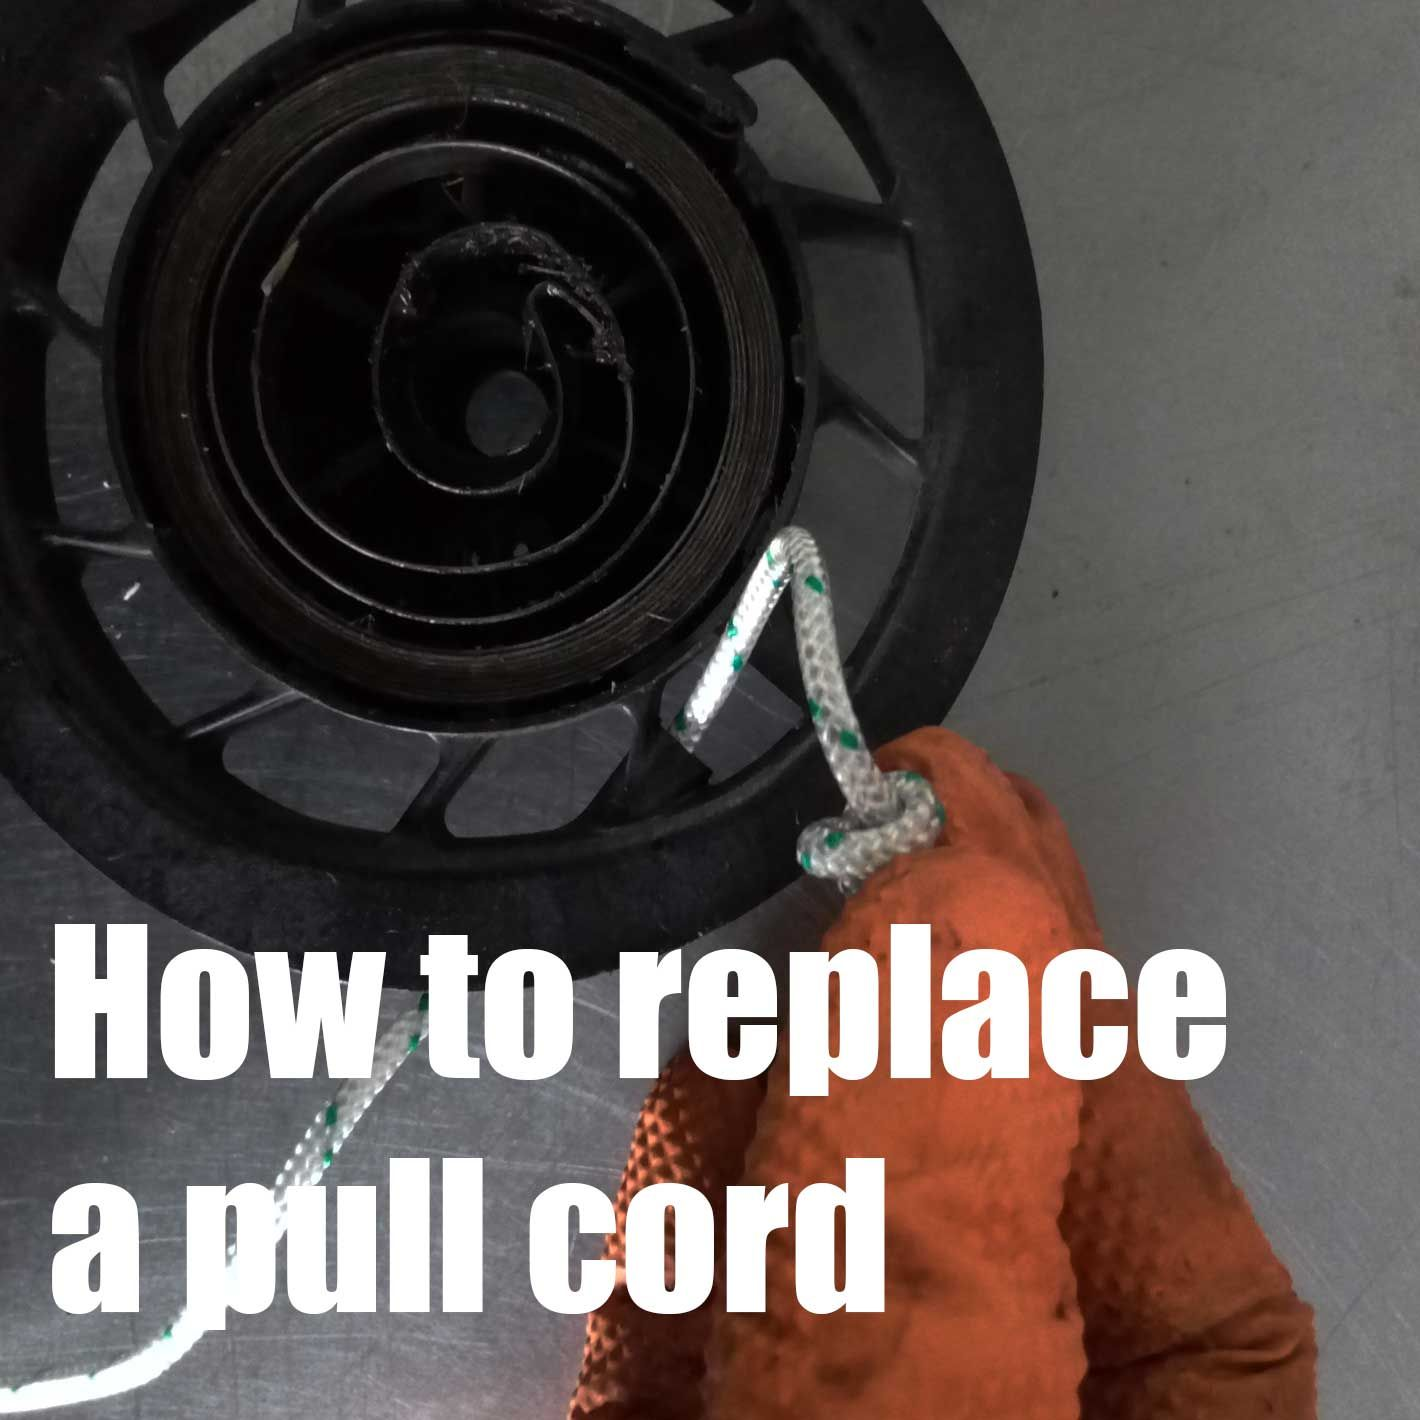 How To Replace A Pull Cord On Lawn Mower Jardineria